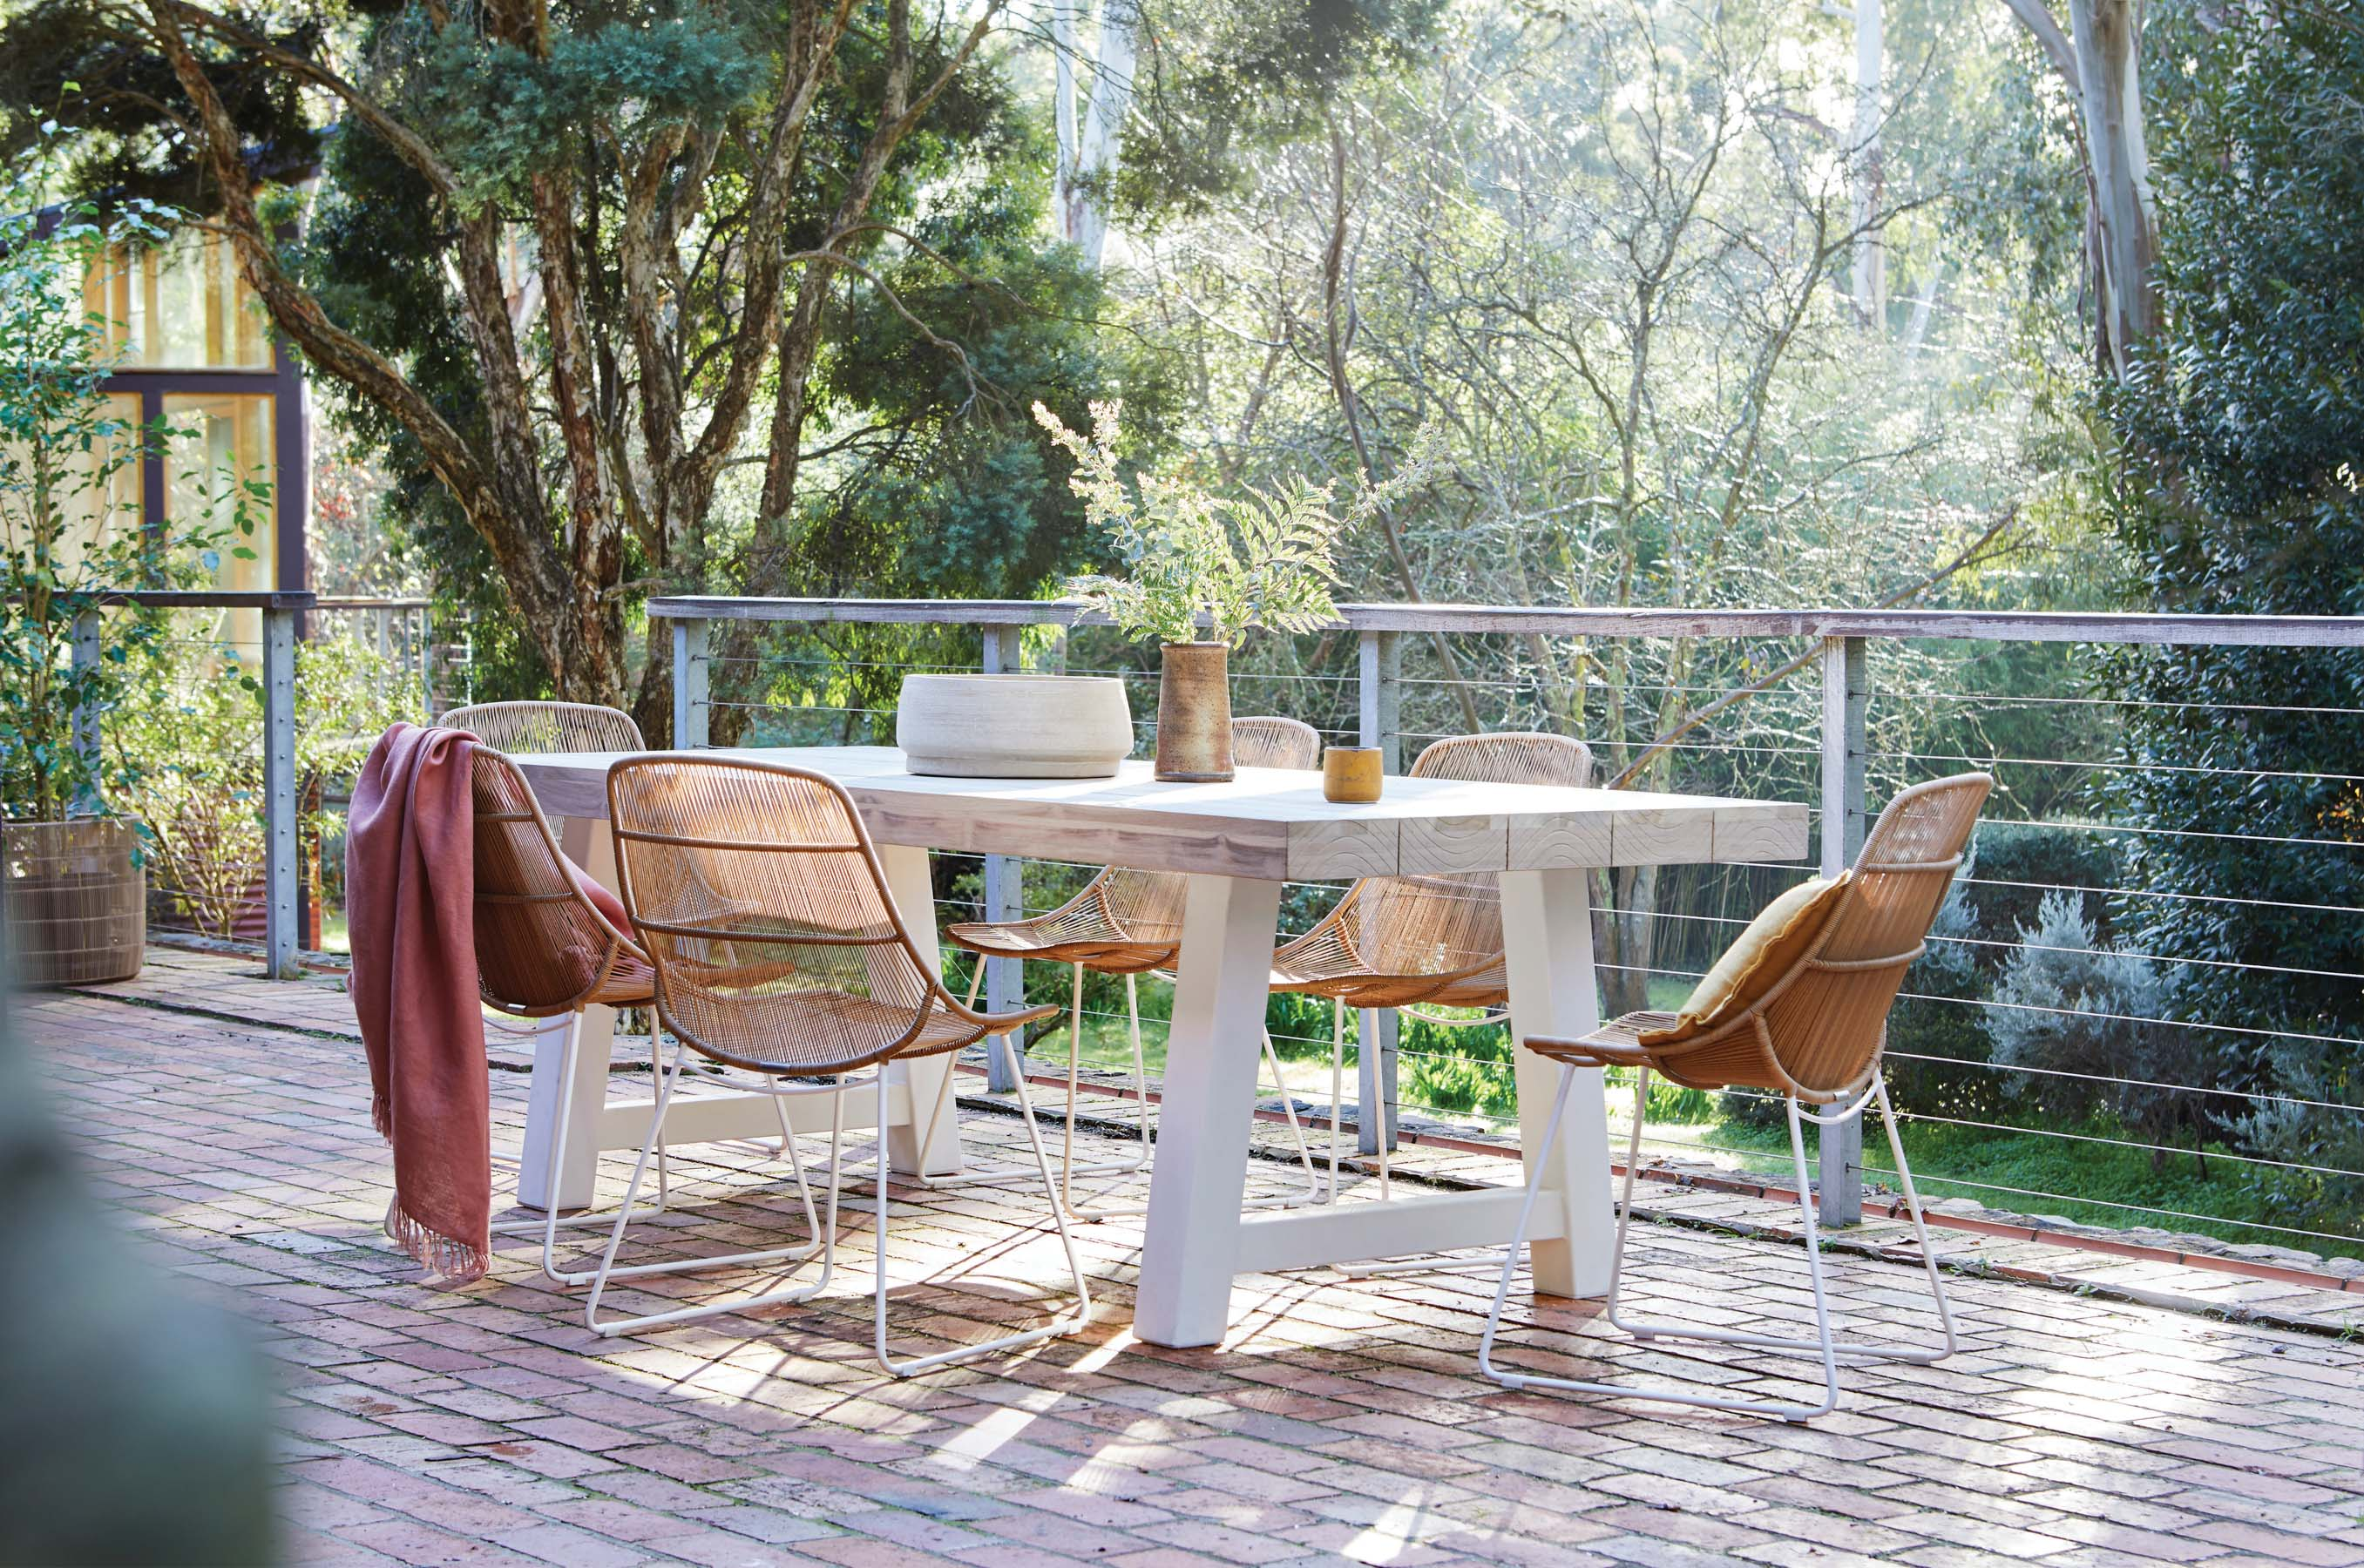 Furniture Gallery Dining-Chairs-Benches-Stools granada-scoop-dining-chairs-02